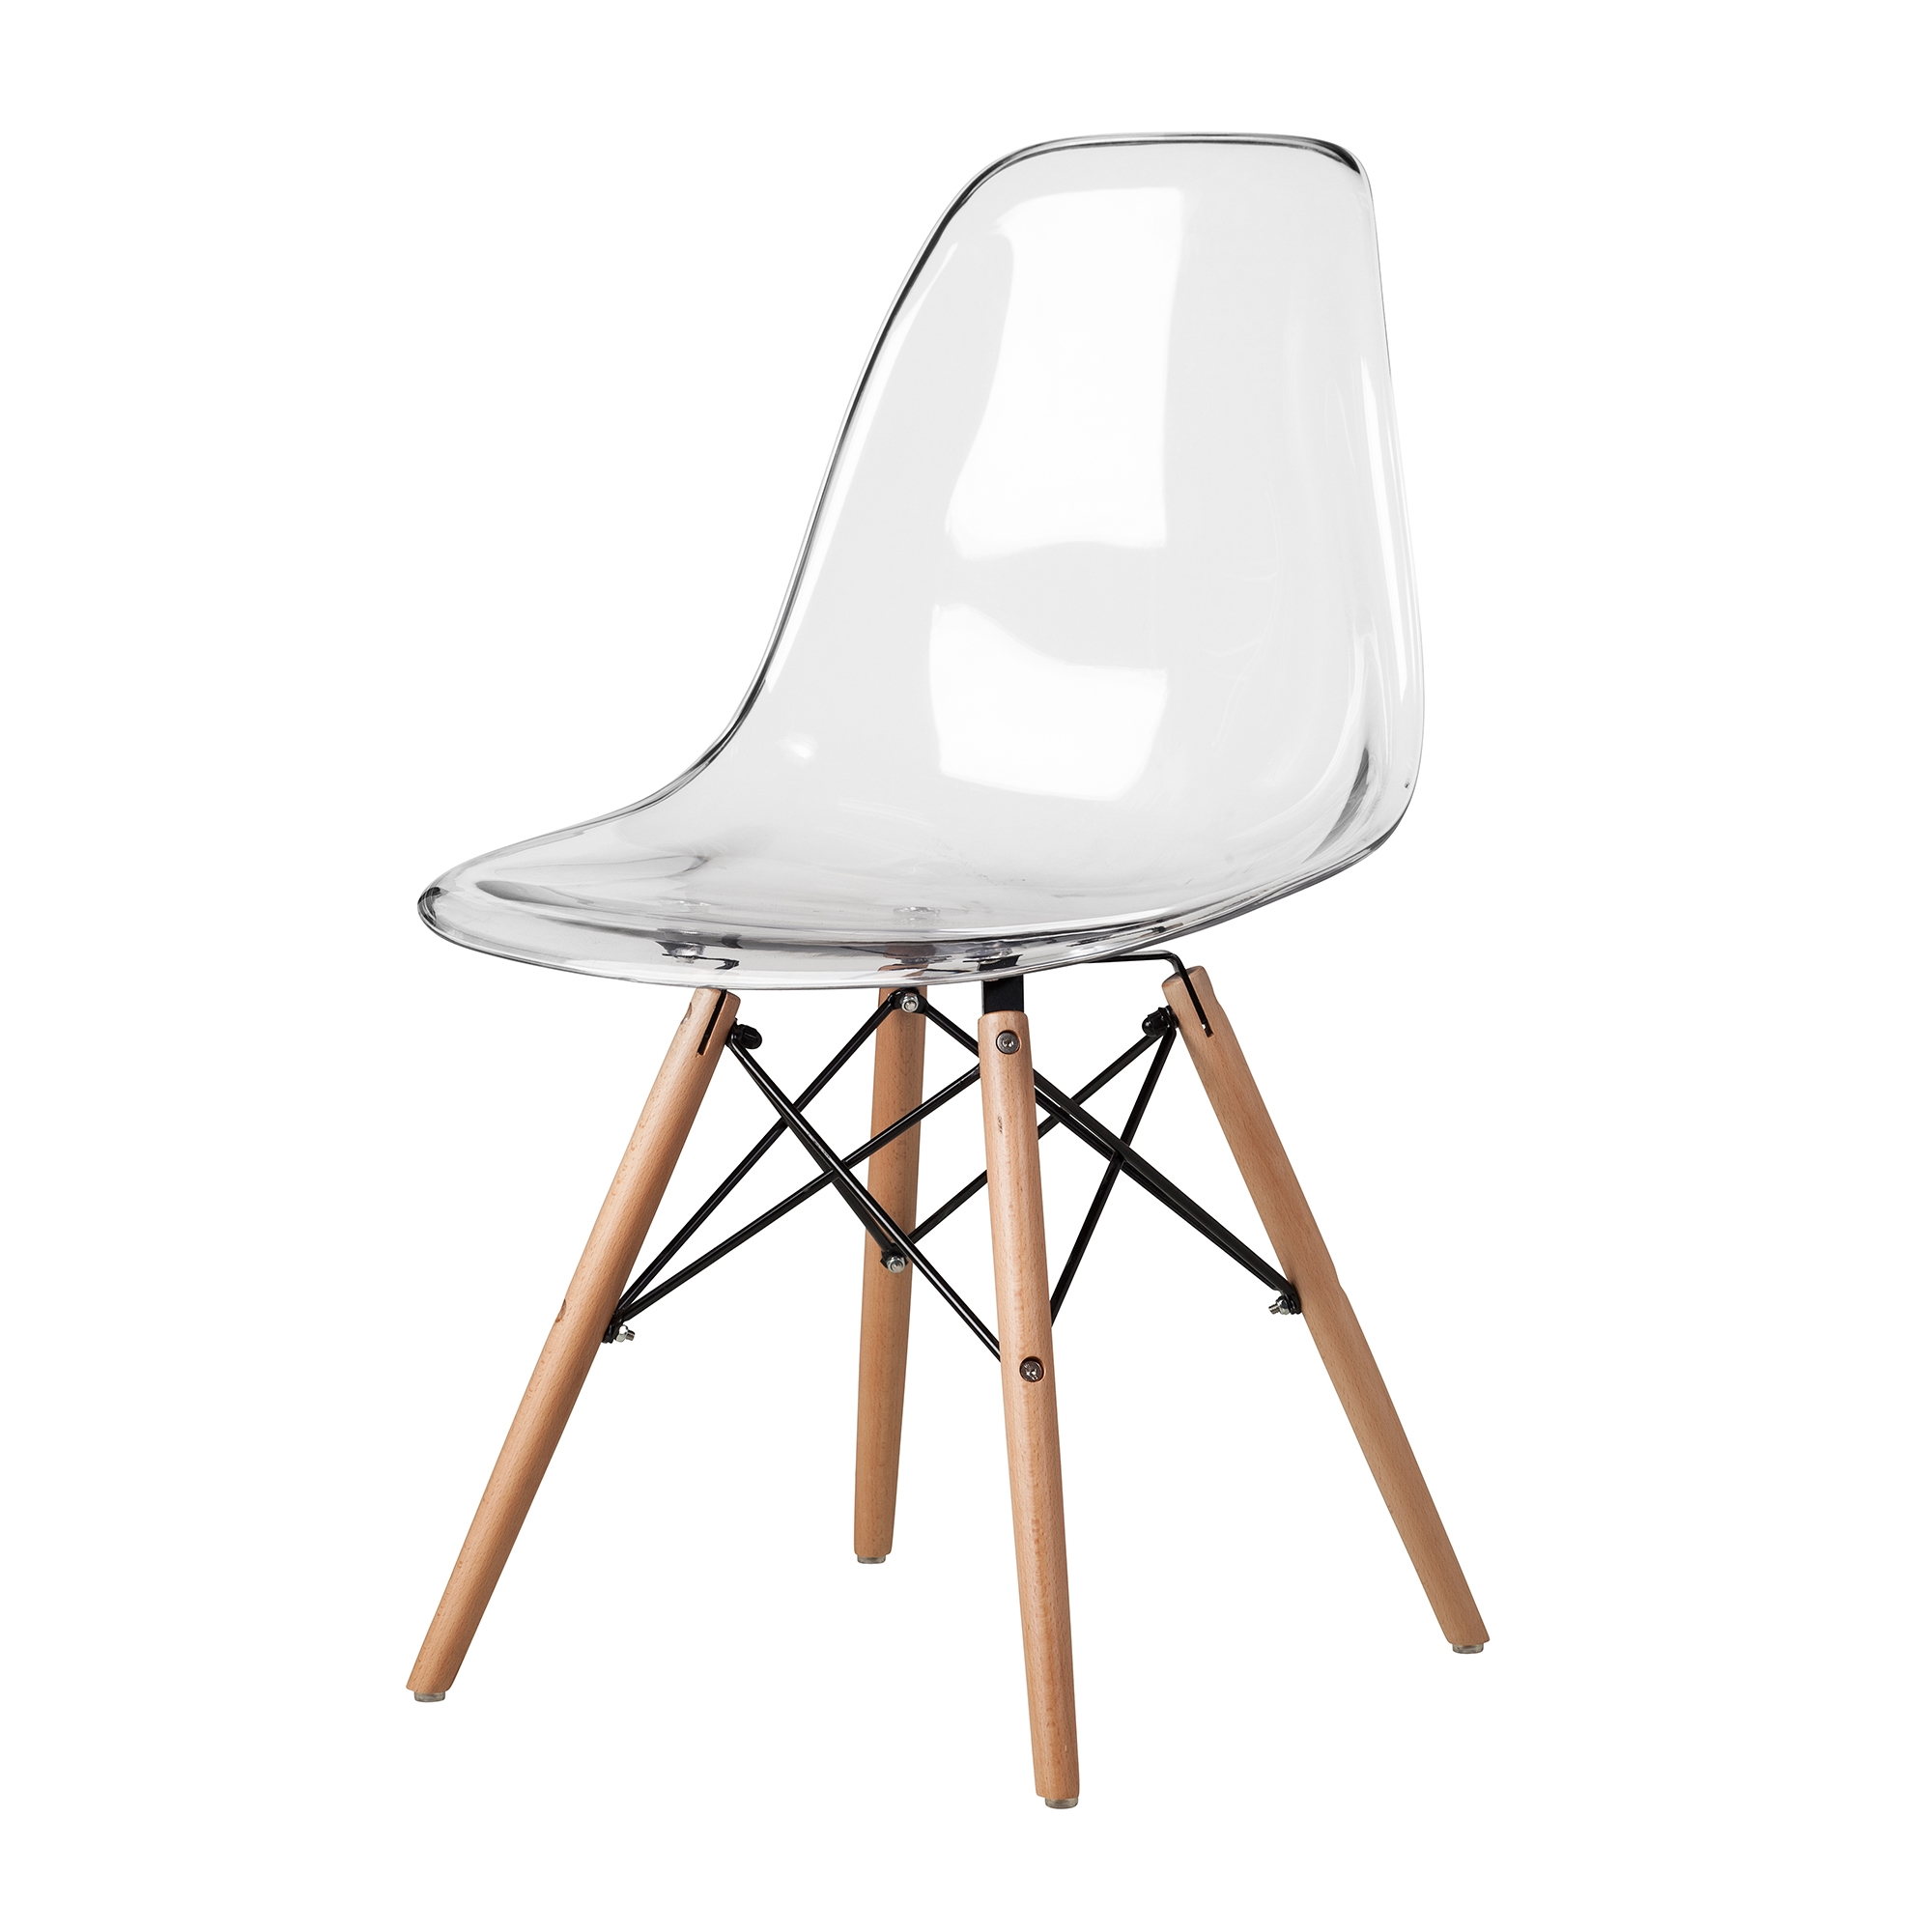 Prime Charles Eames Dsw Side Chair Mid Century Modern Clear Plastic Eames Side Chair Clear Eiffel Legs The Khazana Home Austin Furniture Store Spiritservingveterans Wood Chair Design Ideas Spiritservingveteransorg